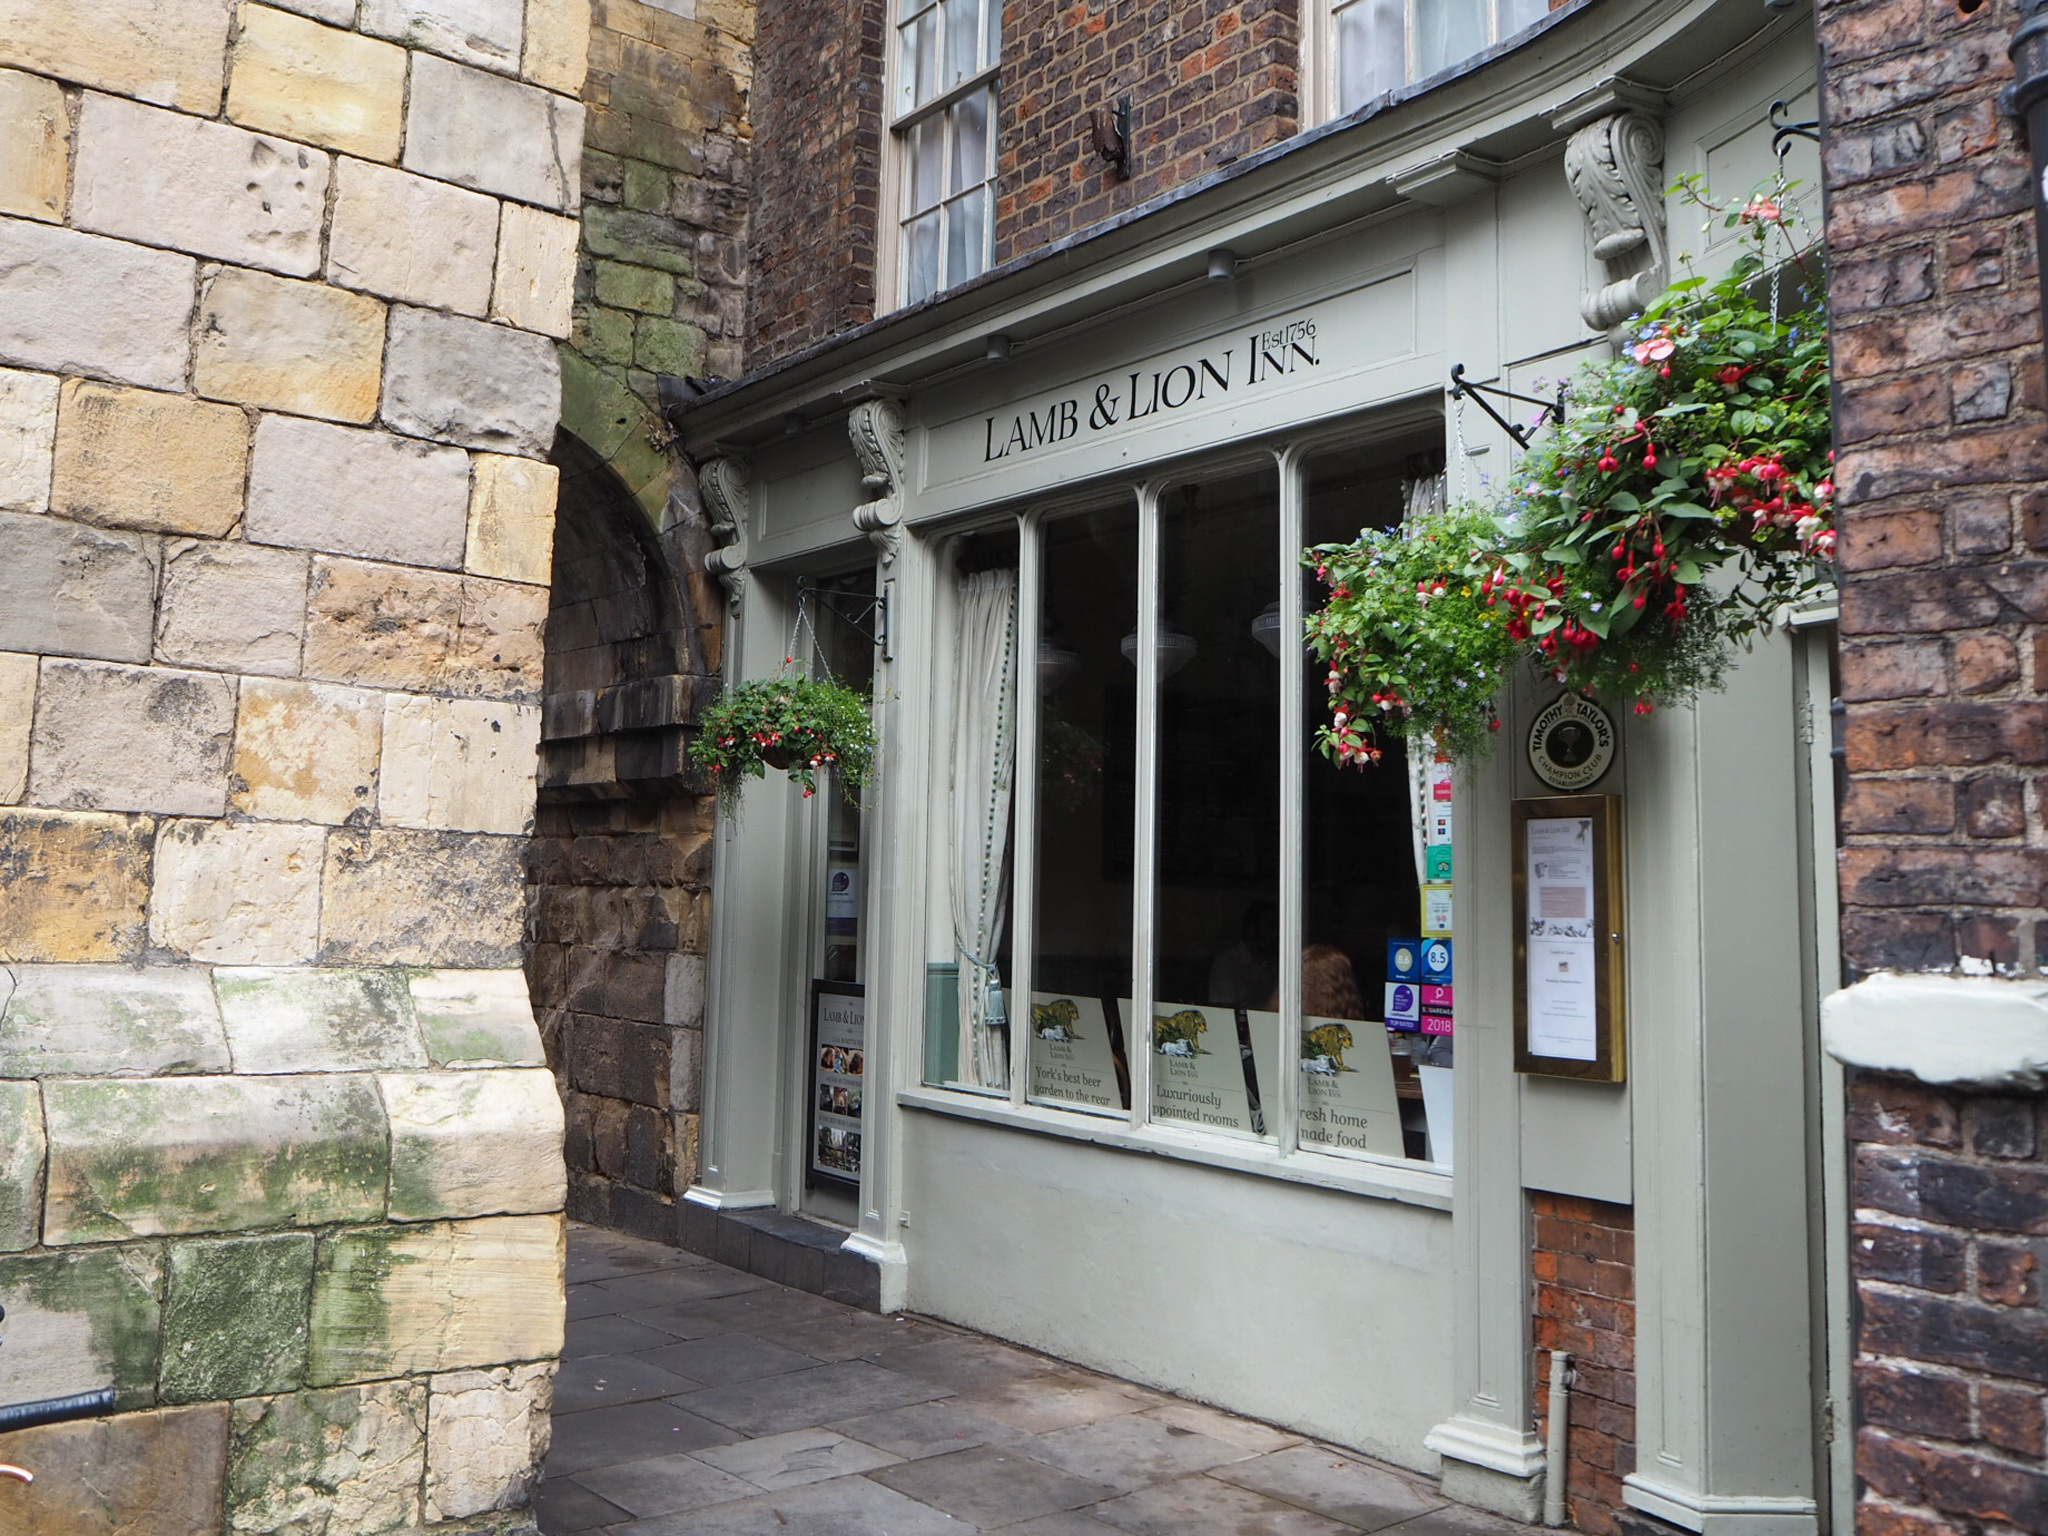 Lamb & Lion Inn in York